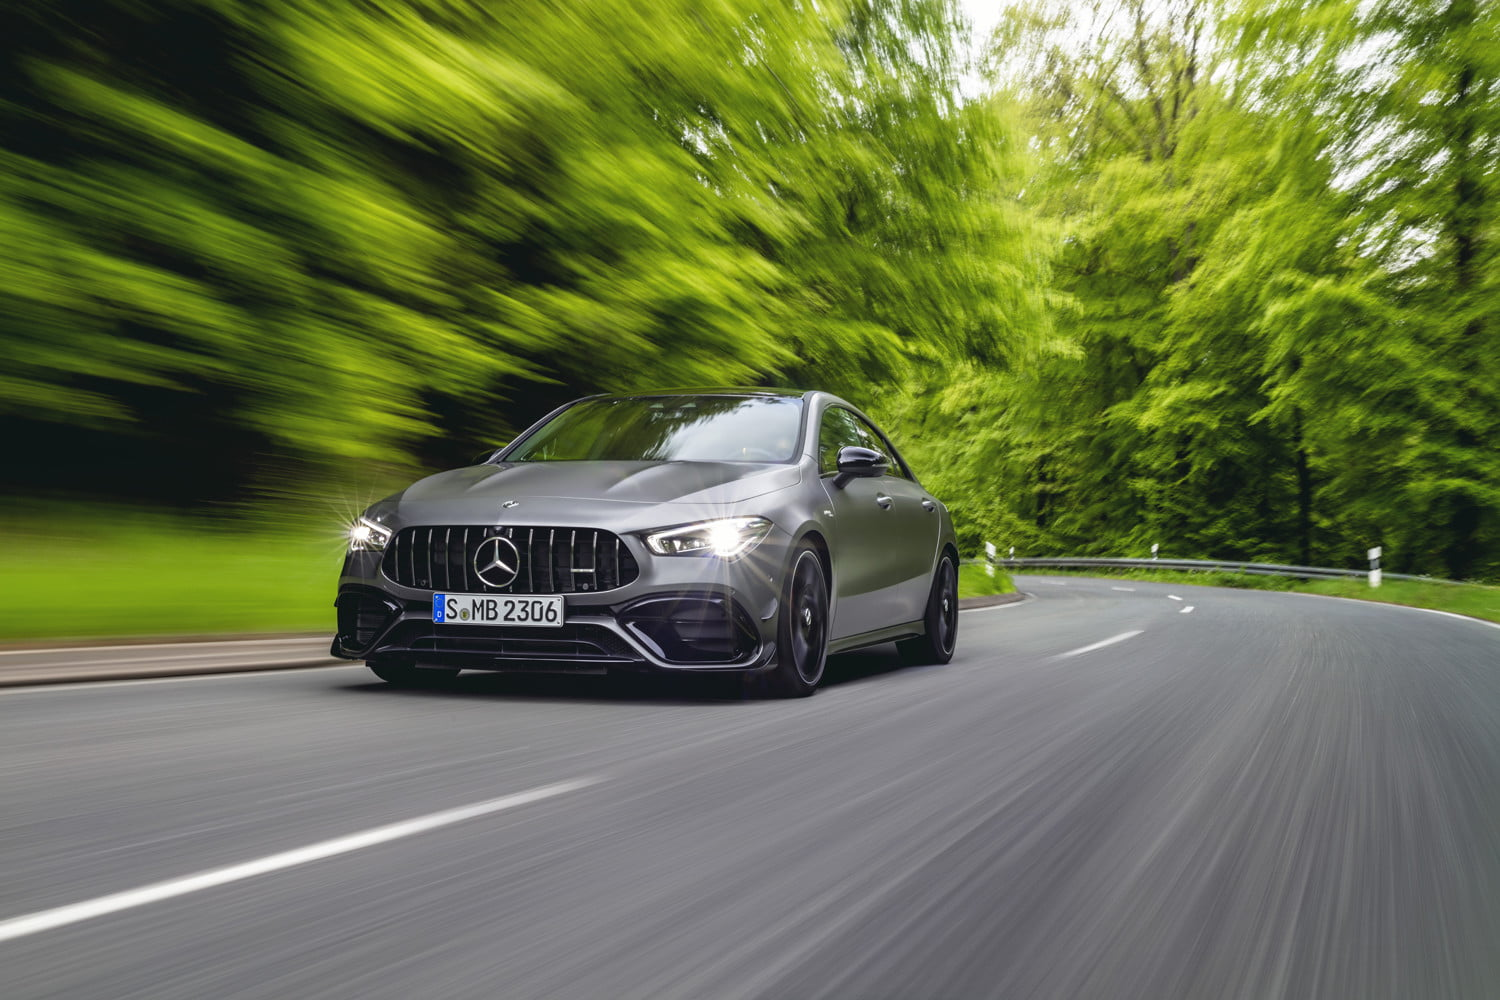 Mercedes-Benz Shows Off 2020 CLA With Design-Led Styling, More Tech